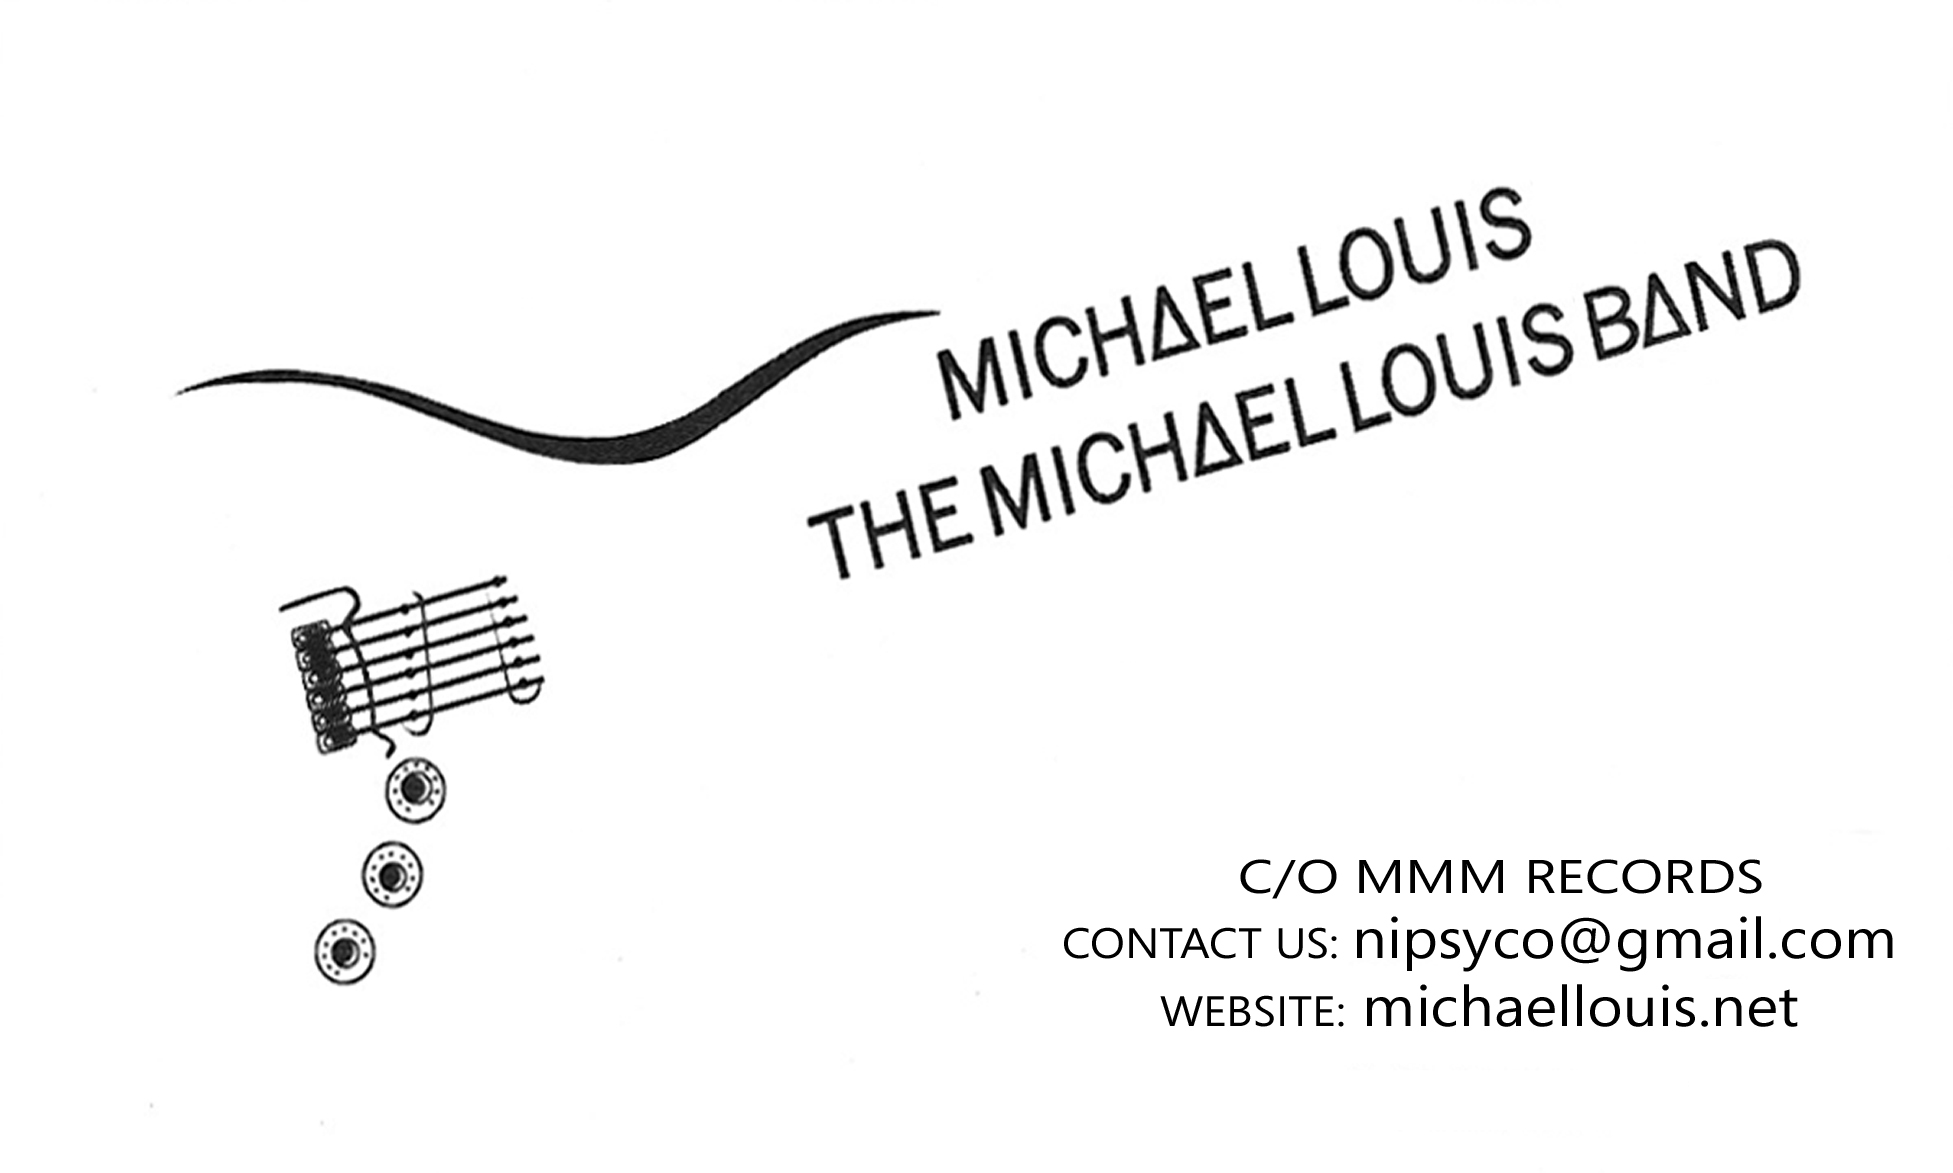 ML & TMLB BIZ CARD LA DESIGN EMAIL & WEBSITE ONLY SMALLER